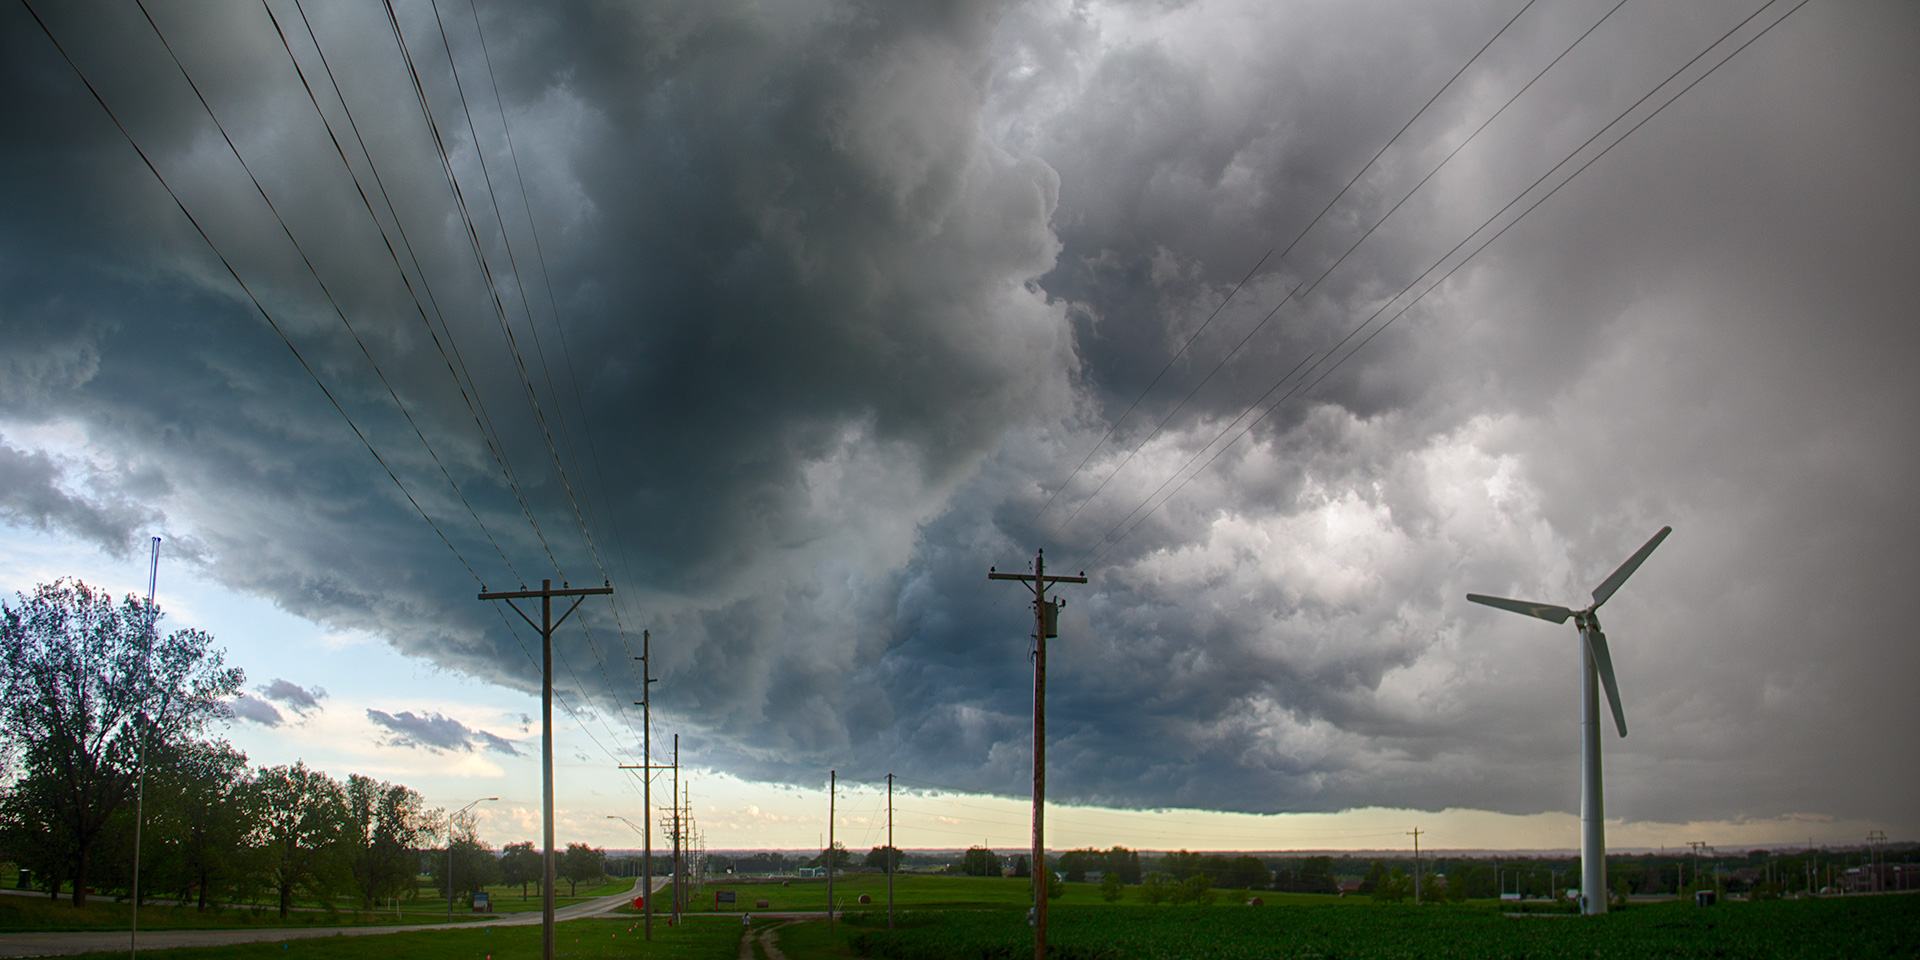 The bulk of the sky replacements used this photo I took of a storm over my hometown of Norfolk, NE.